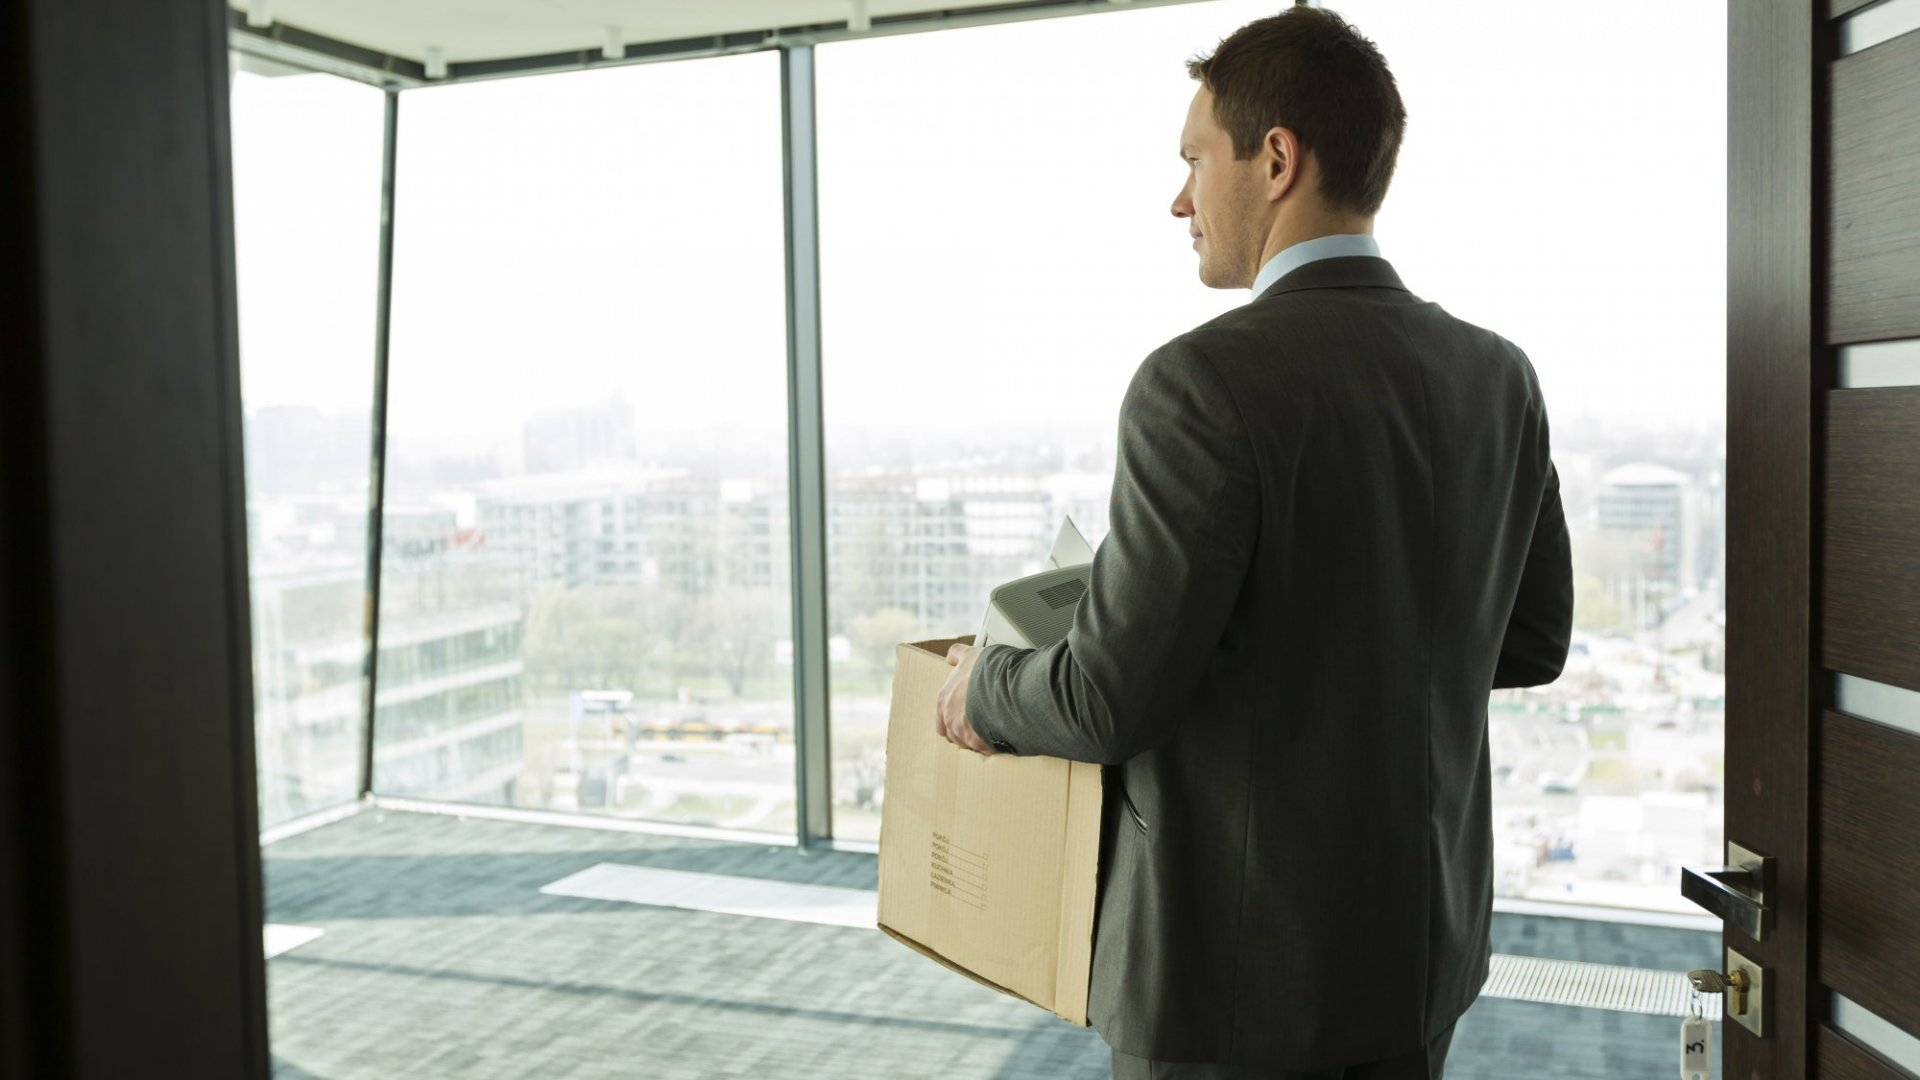 A Simple 3-Phase Approach to Employee Onboarding